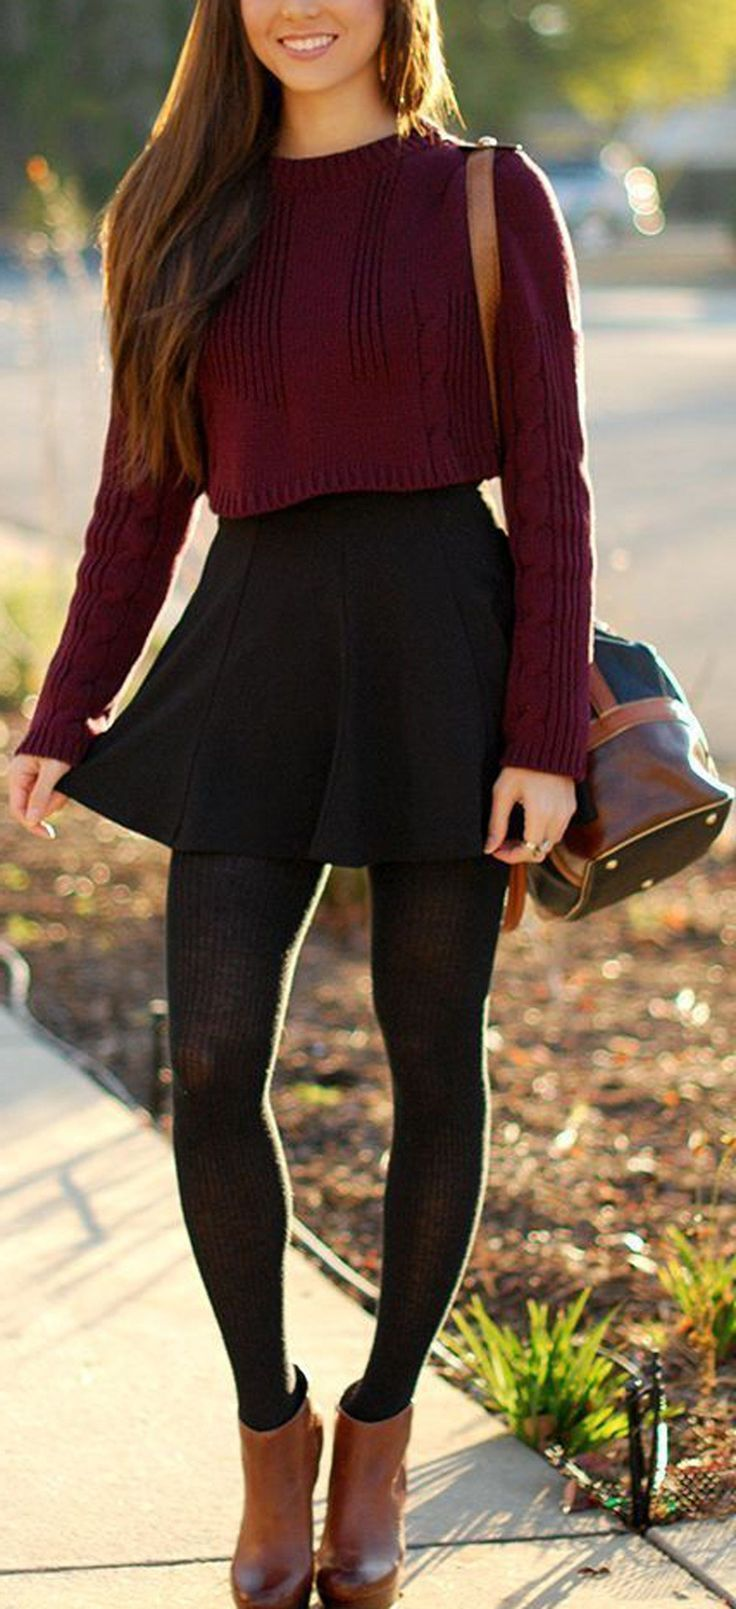 Photo of Classy Winter Outfit Ideas For Teens For Teenage Girls Crop Top Skater Skirt …